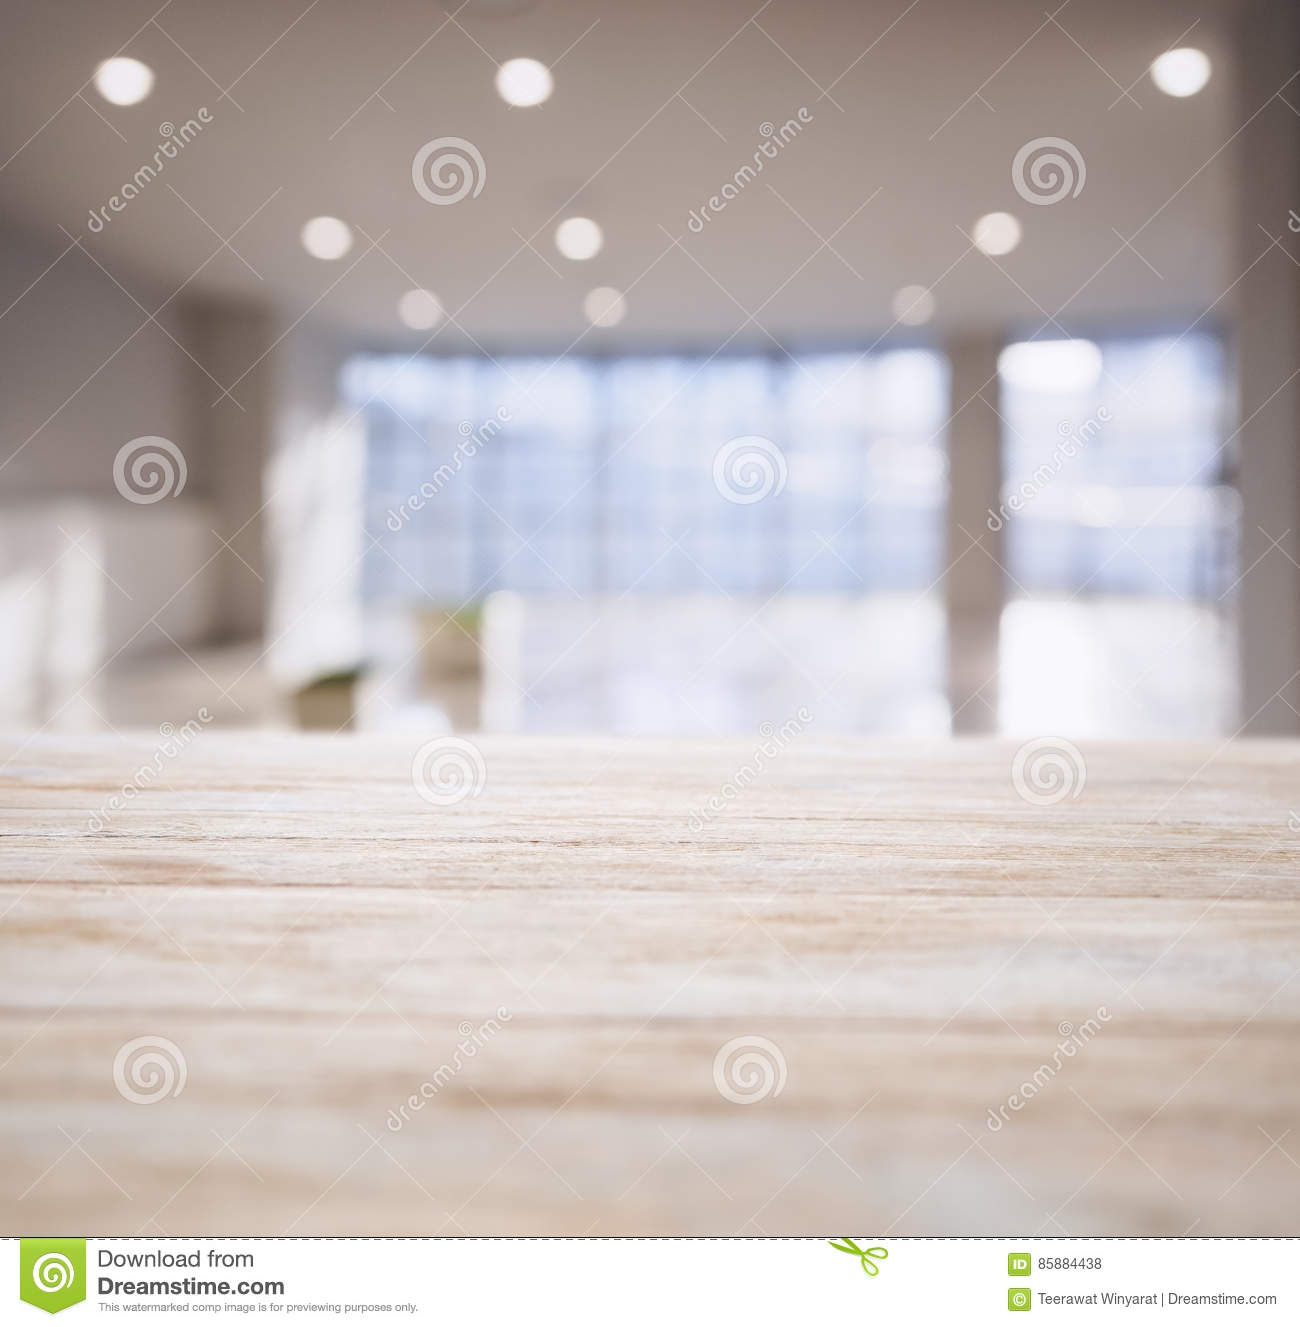 office space lighting. Table Top Blur Interior Office Space Modern Architecture Window Frame With Lighting